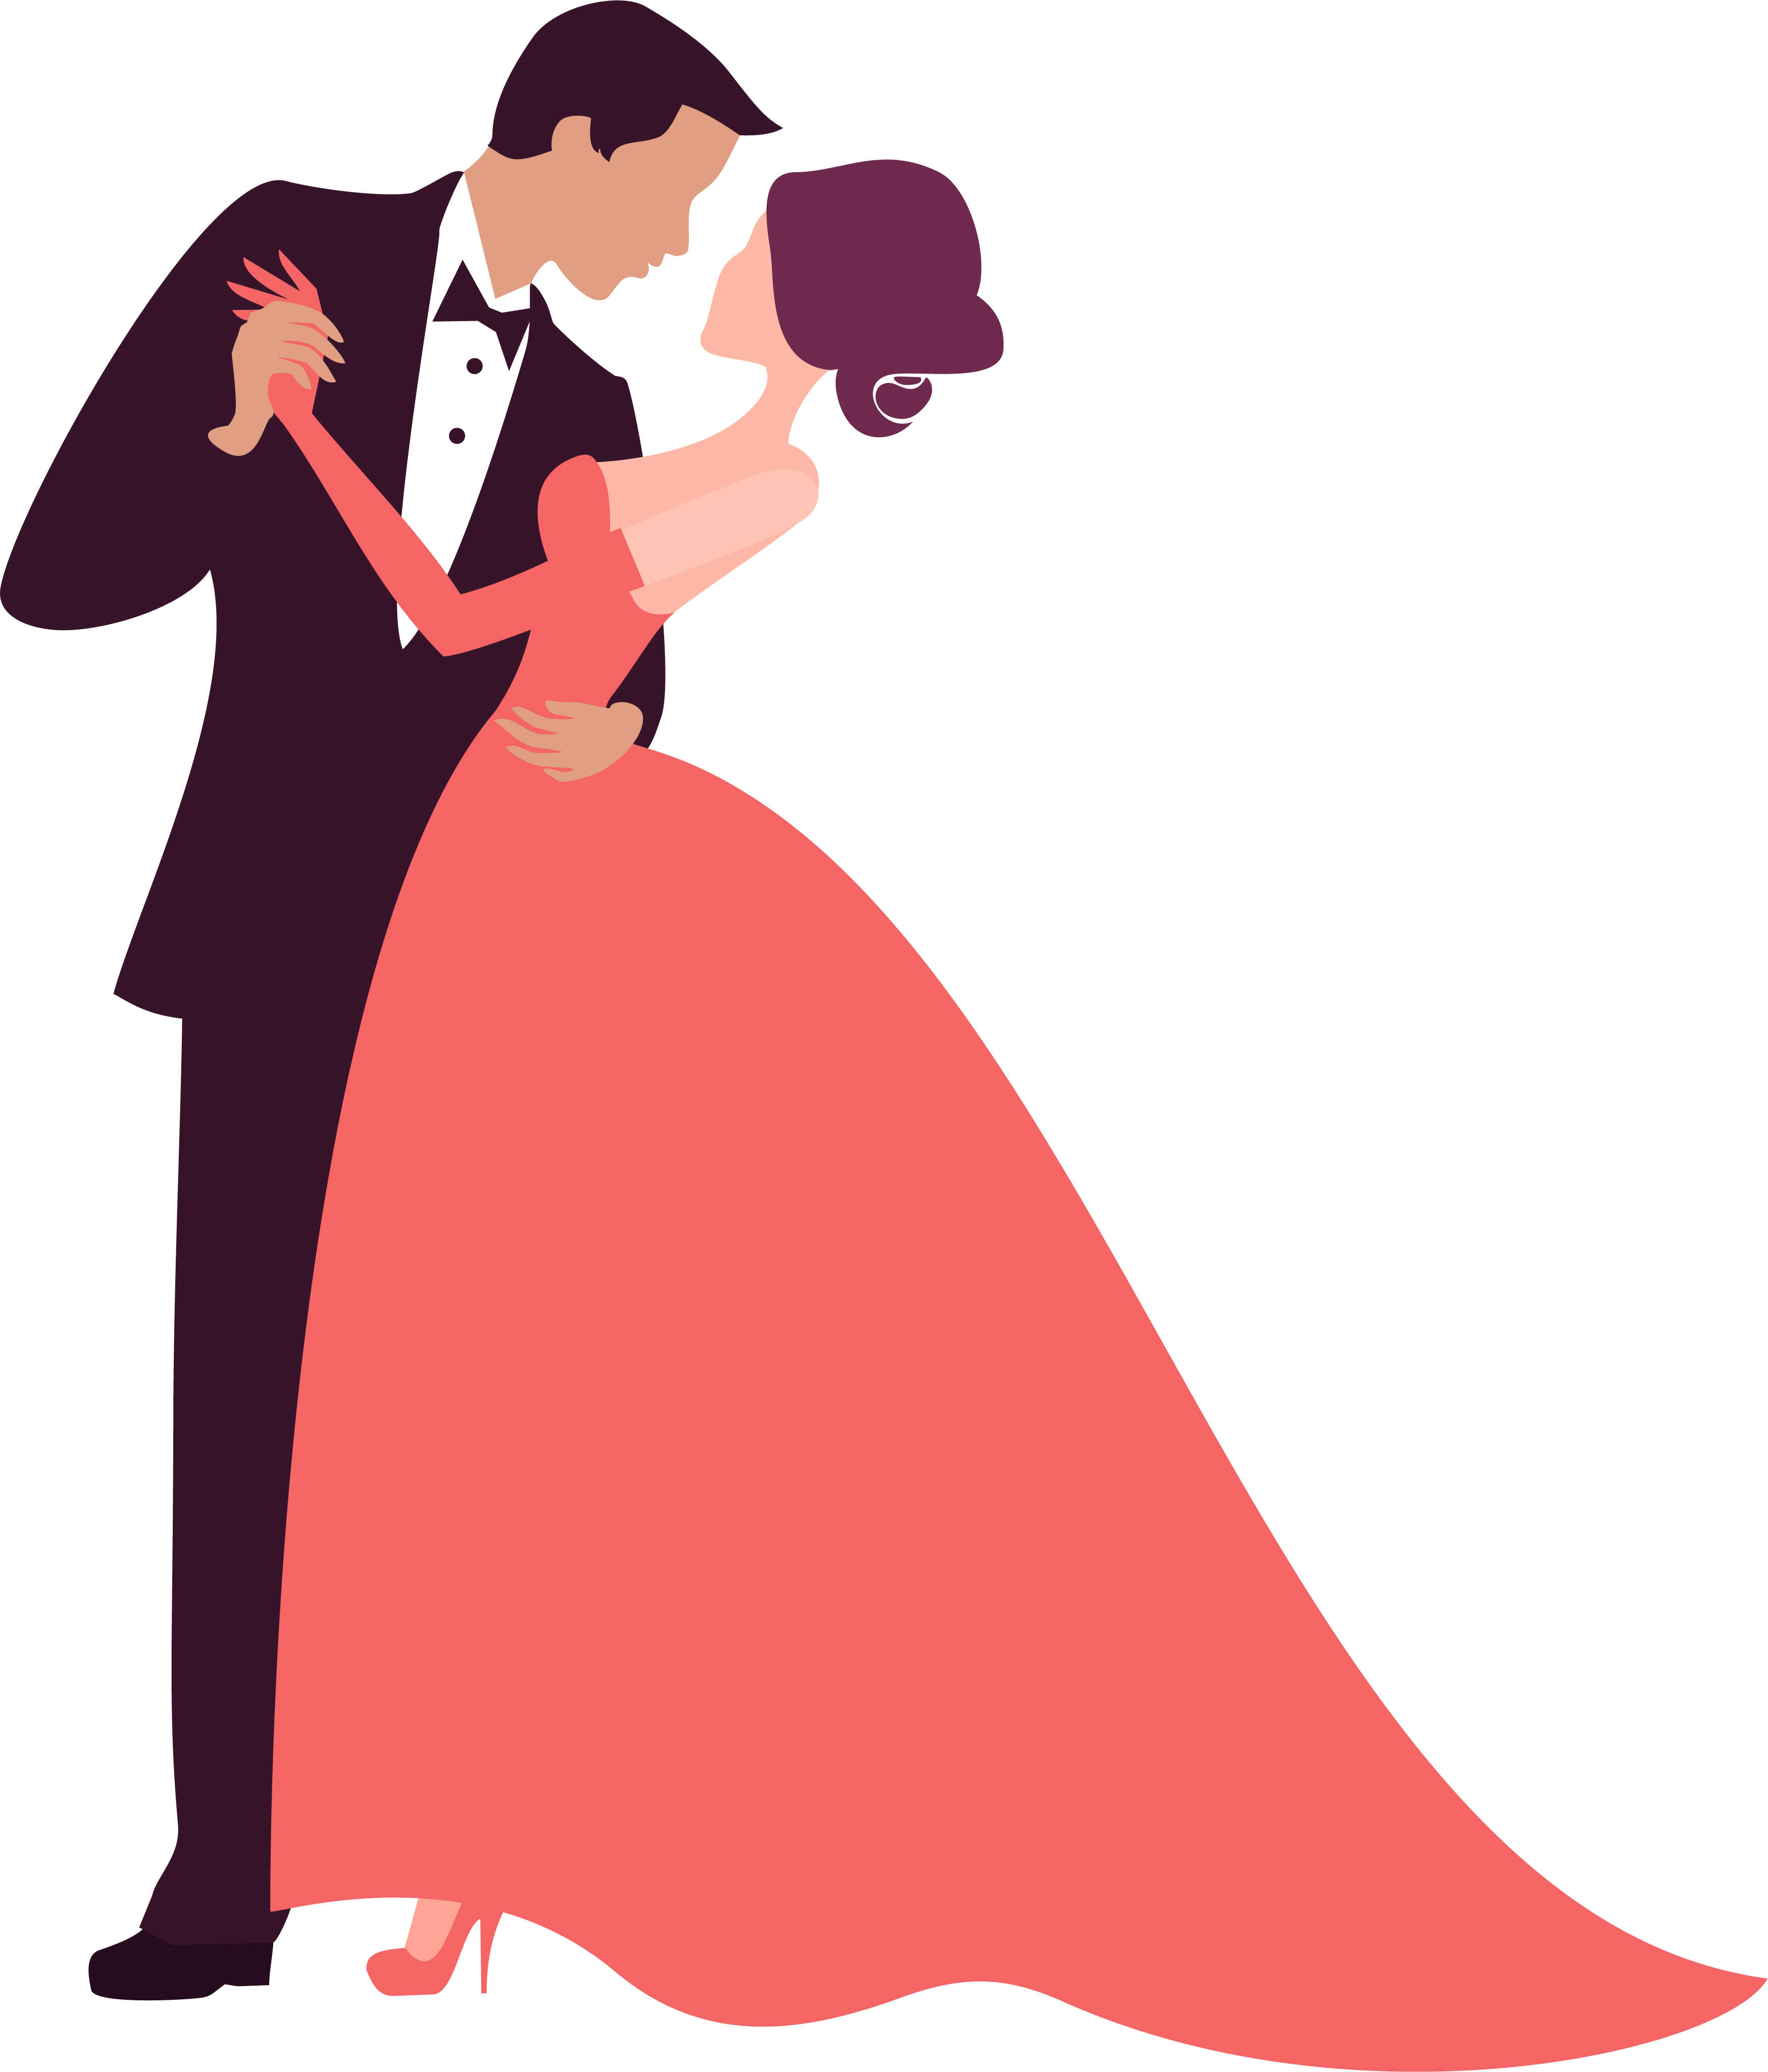 Prom clipart bride groom dance. Decoration clip arts for